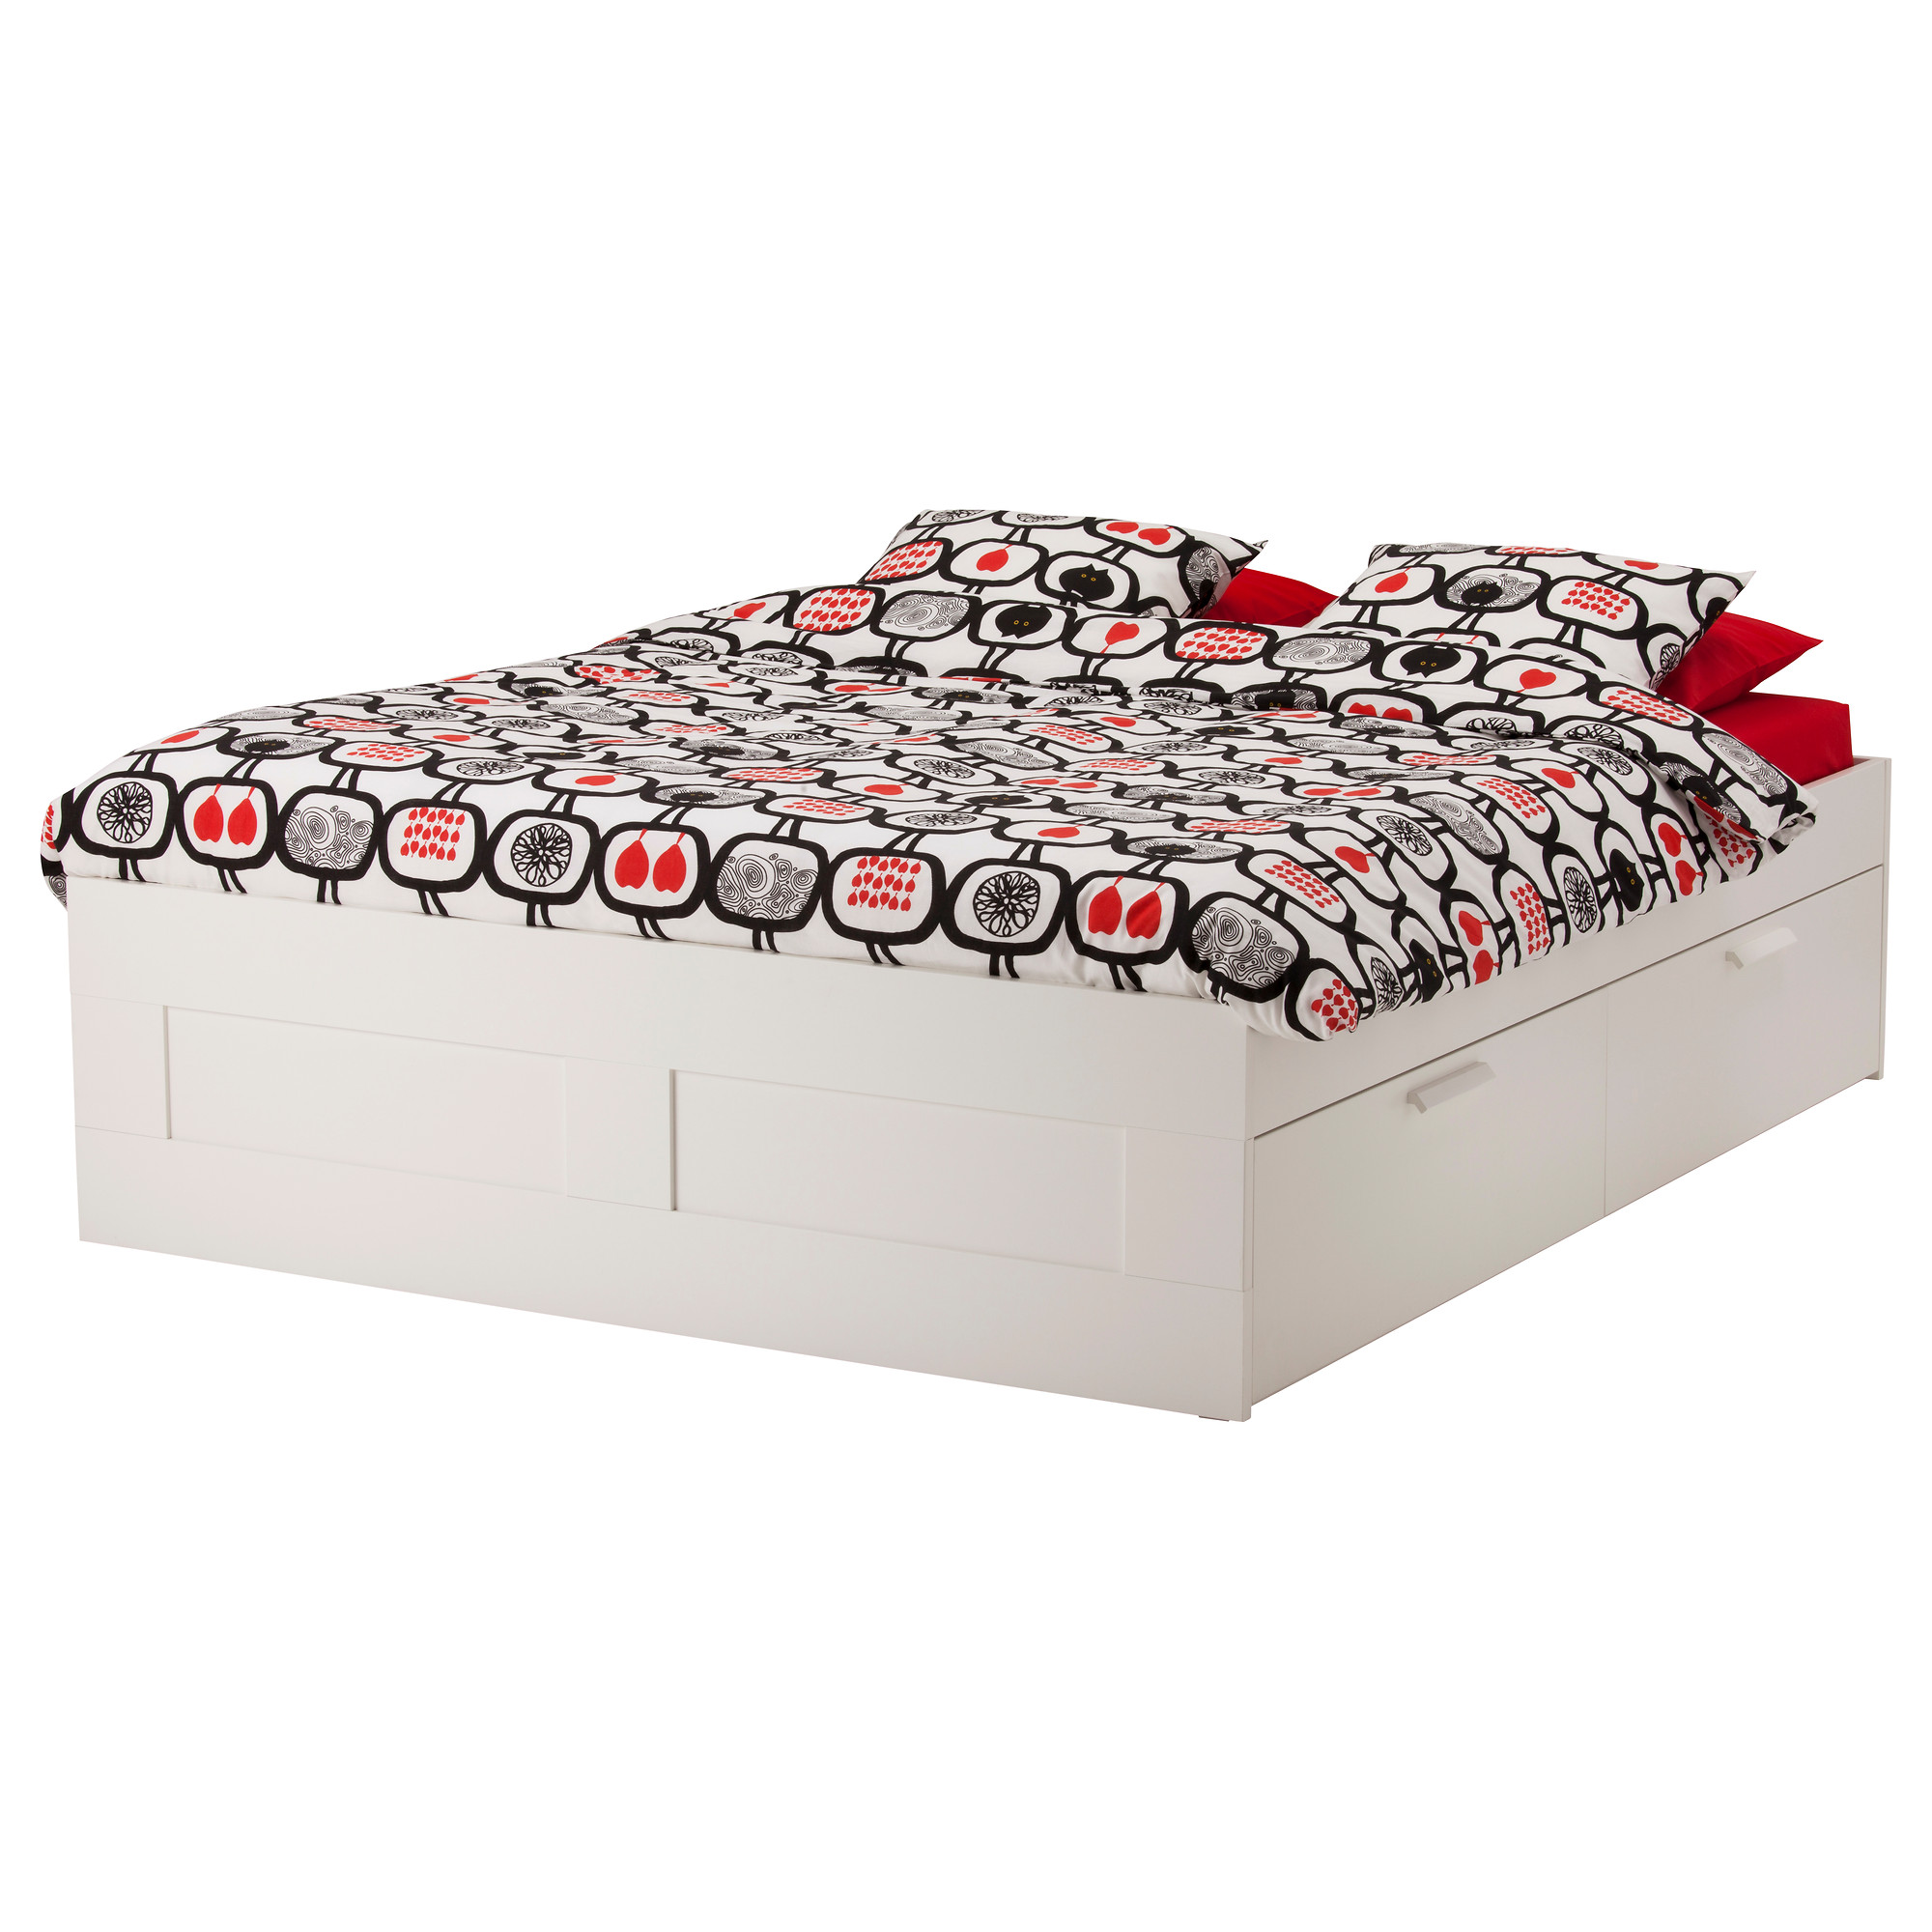 Unique Pattern Of Bed And Piilows With White Ikea Frame Drawers